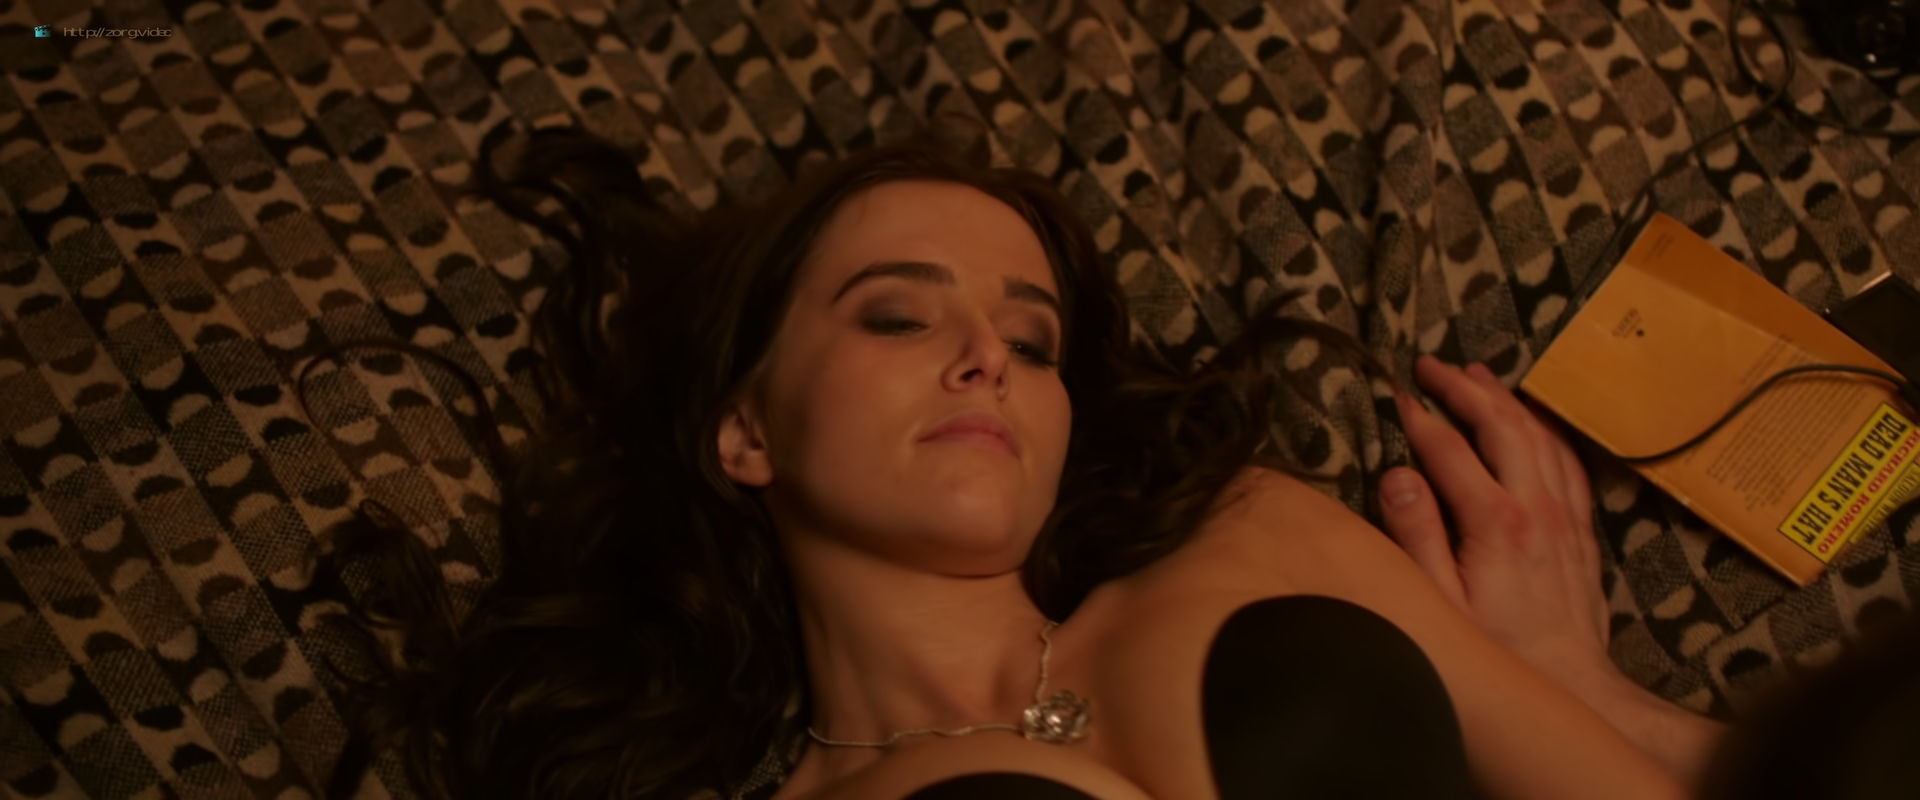 Zoey Deutch hot and sexy in black lingerie and some mild sex in - Vampire Academy (2014) HD 1080p BluRay (6)